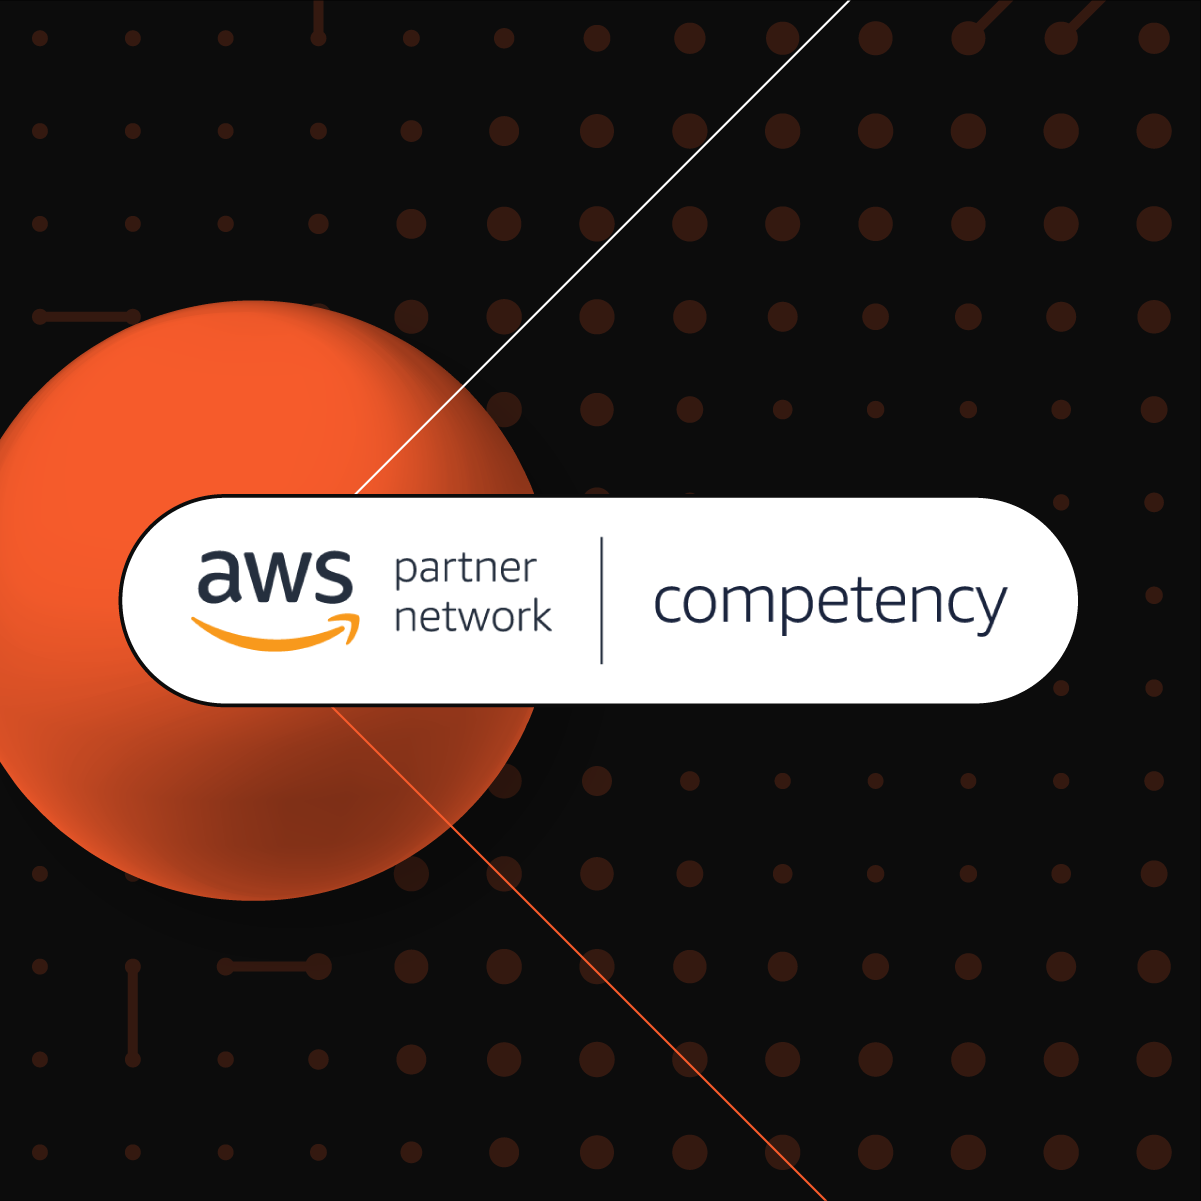 Image of Aws competency 1200x1200px